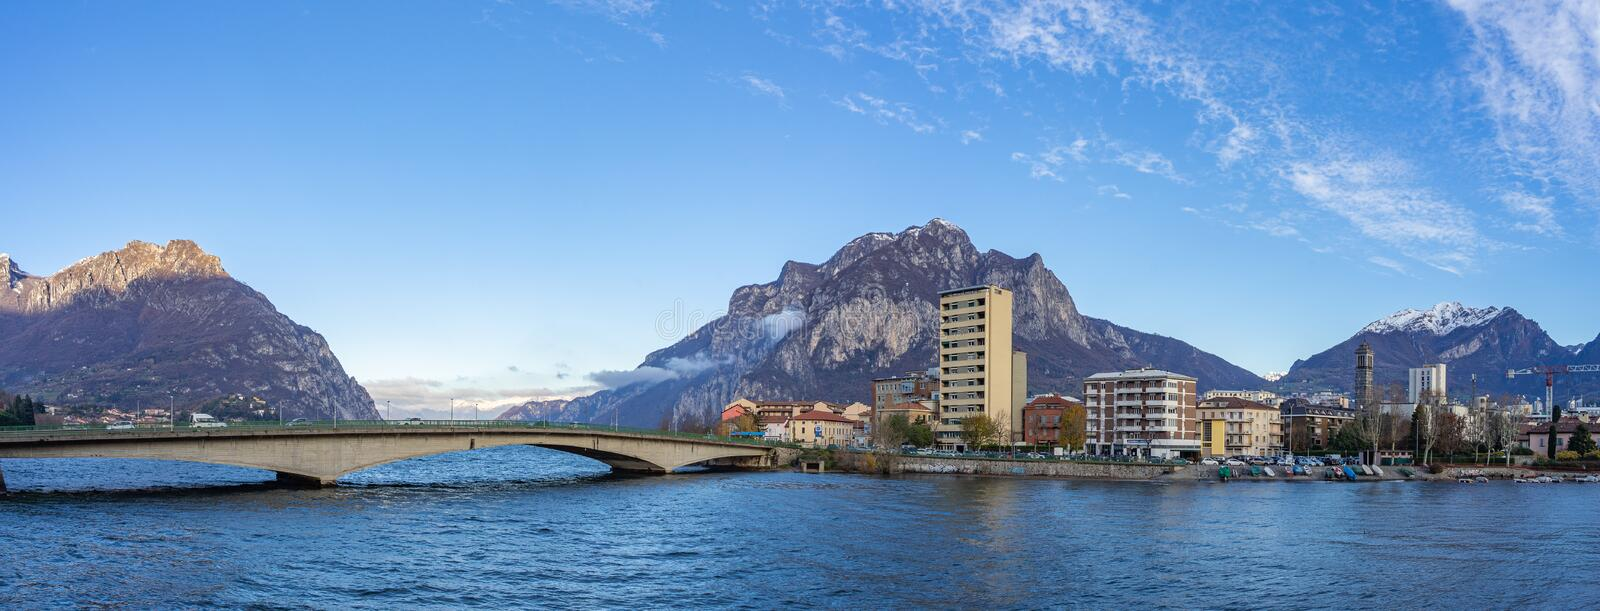 Town of Lecco, Italy in December time stock photo